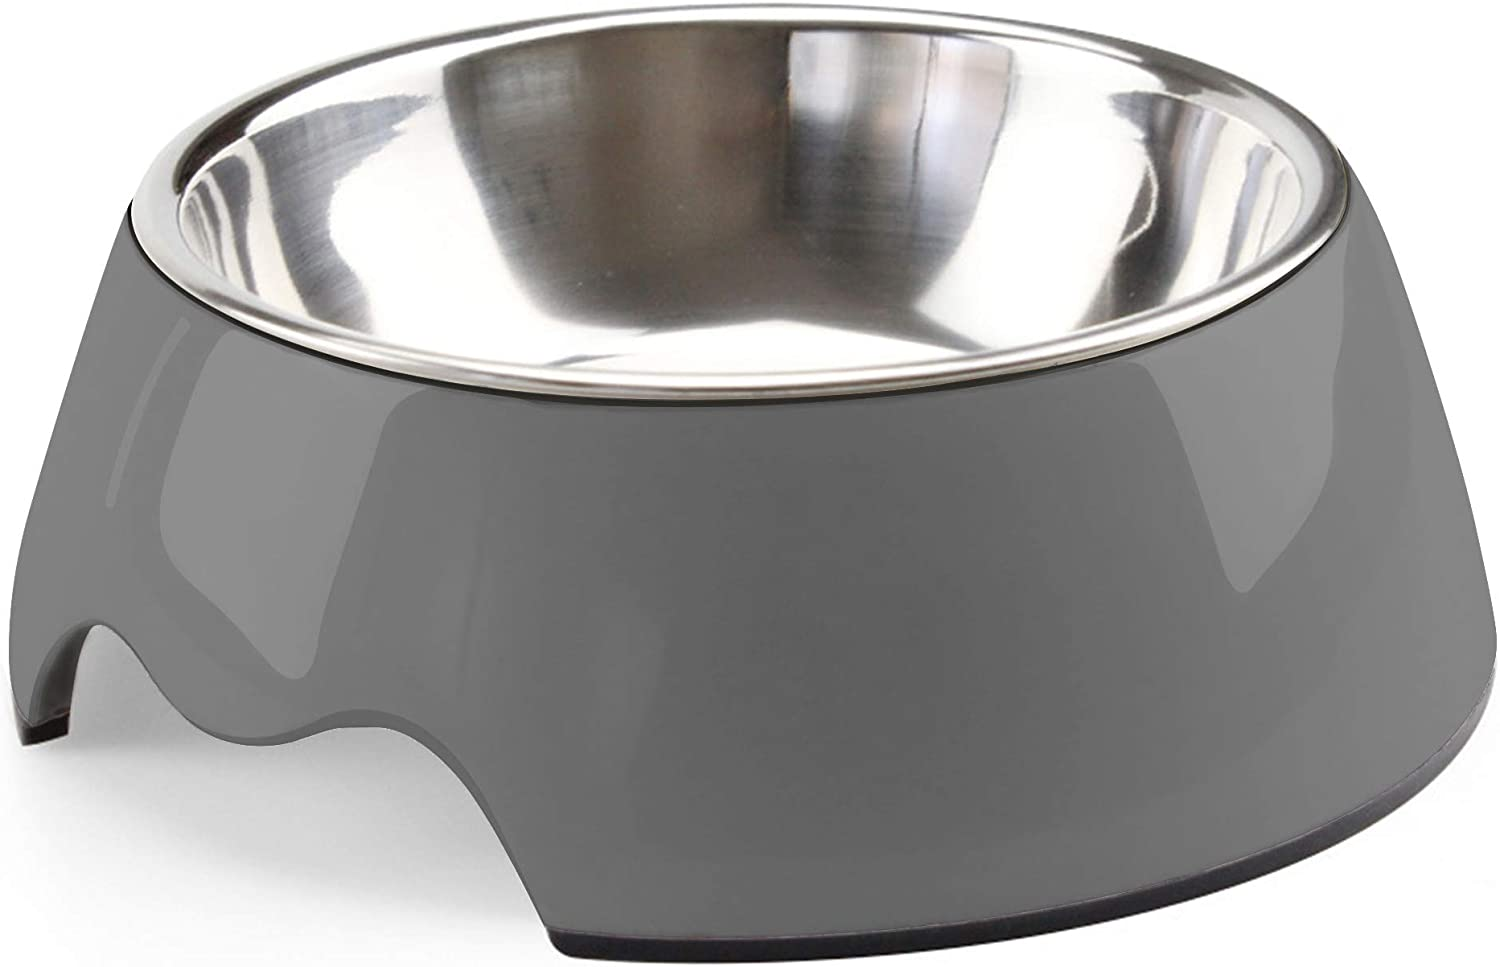 choemore Dog Bowl Stainless Steel Dog Food Bowl Anti-Slip Cat Dish with Removable Dog Water Bowl